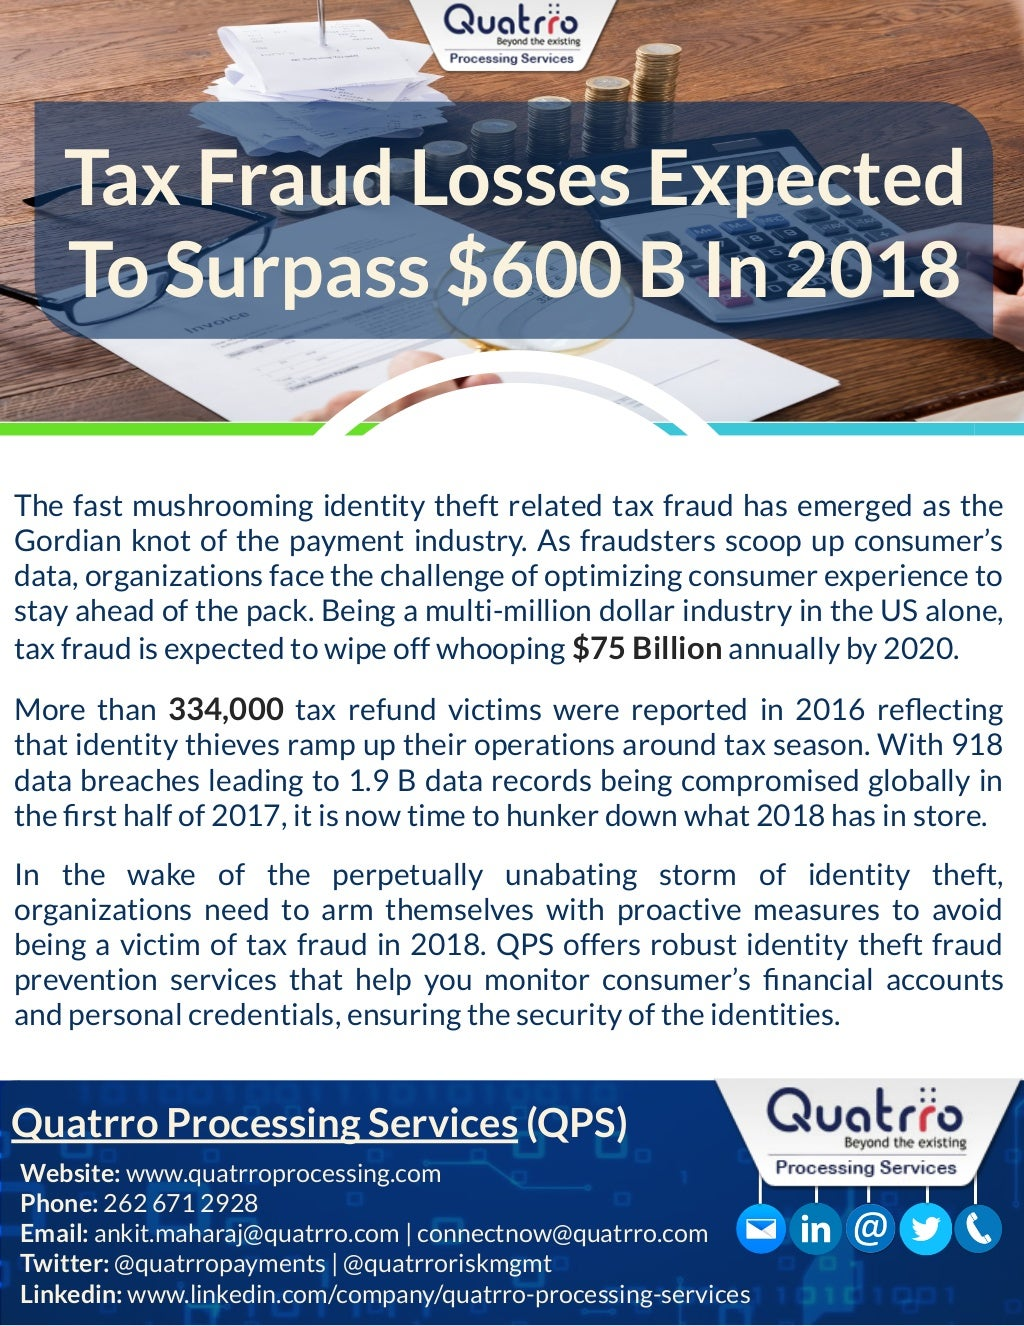 Tax Fraud Expected To Surpass $600B In 2018